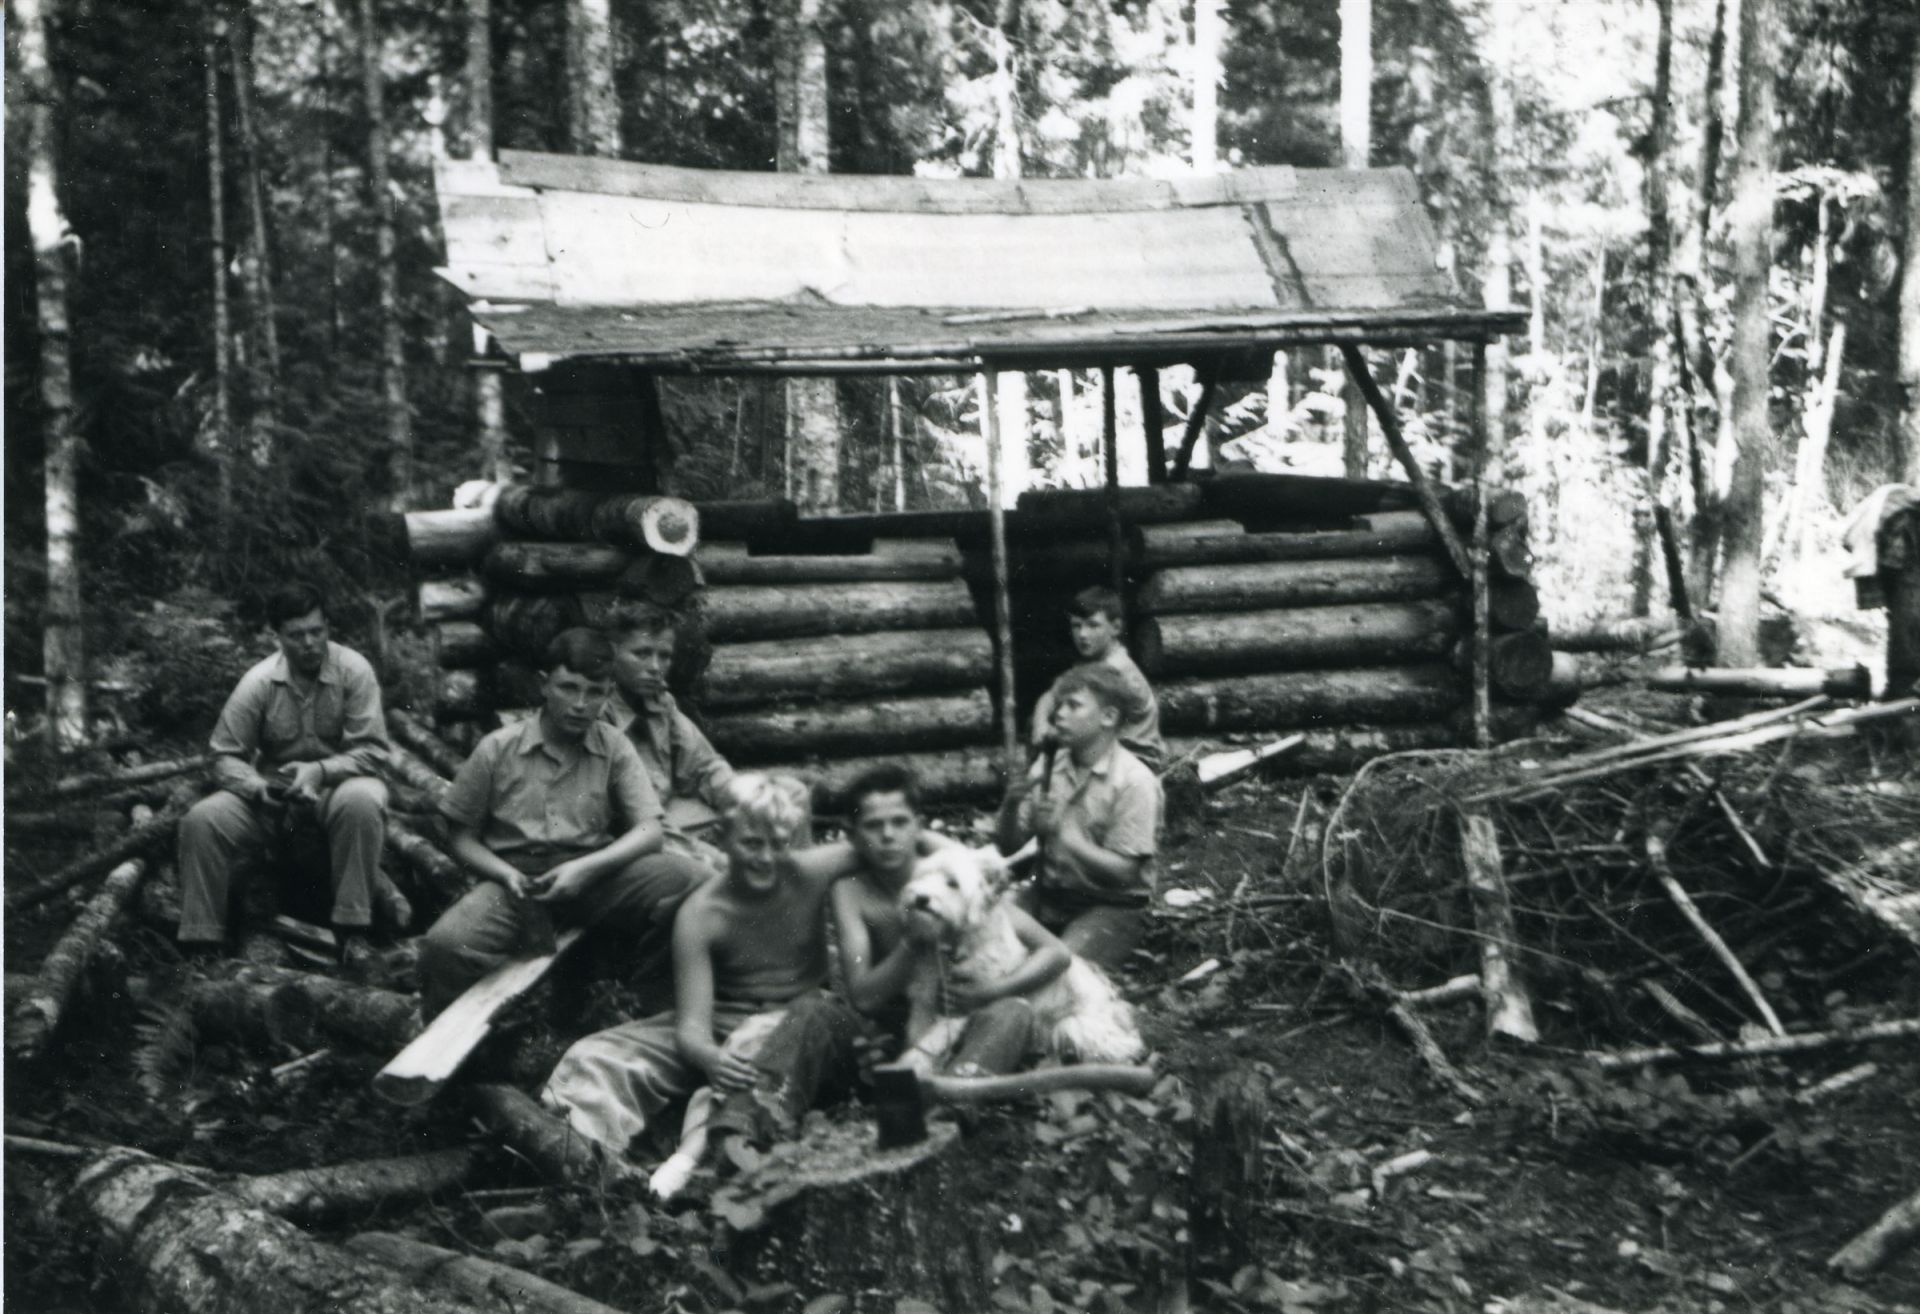 Students camping and building forts, 1948